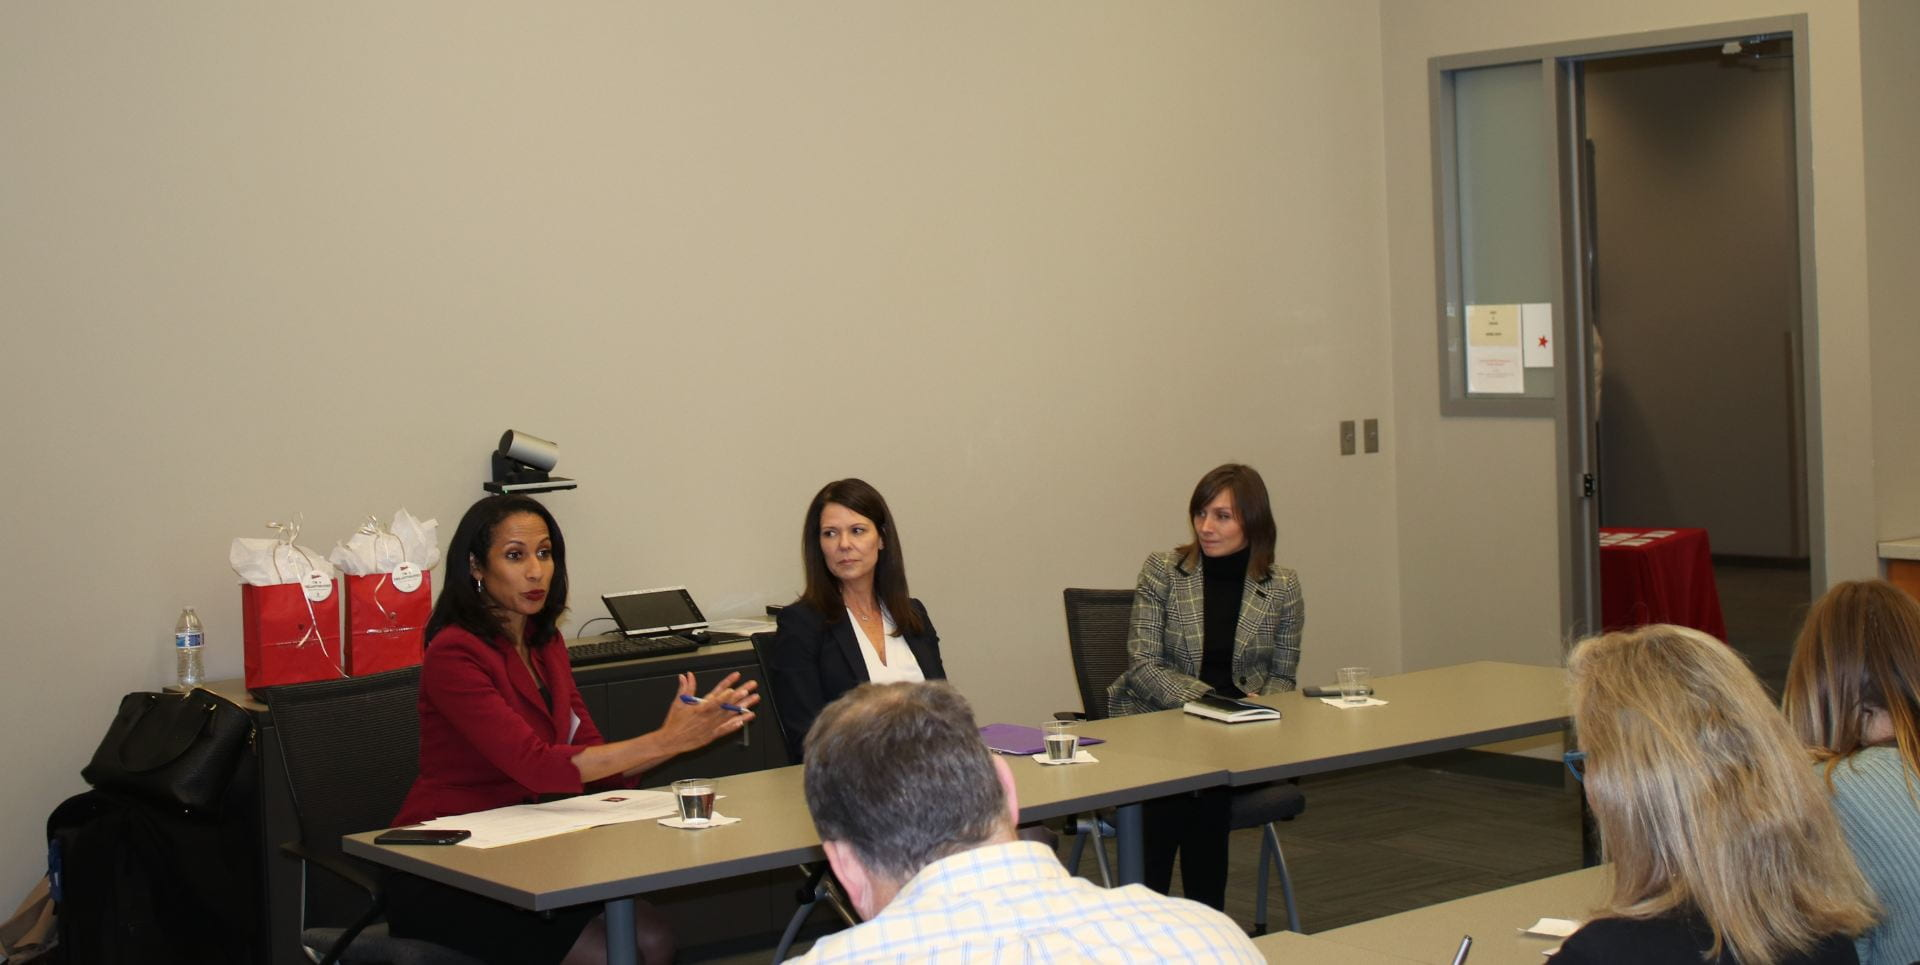 Dr. Una Osili, Kristen Robinson, and Sarah Gelfand discuss donor-advised funds and Fidelity Charitable.